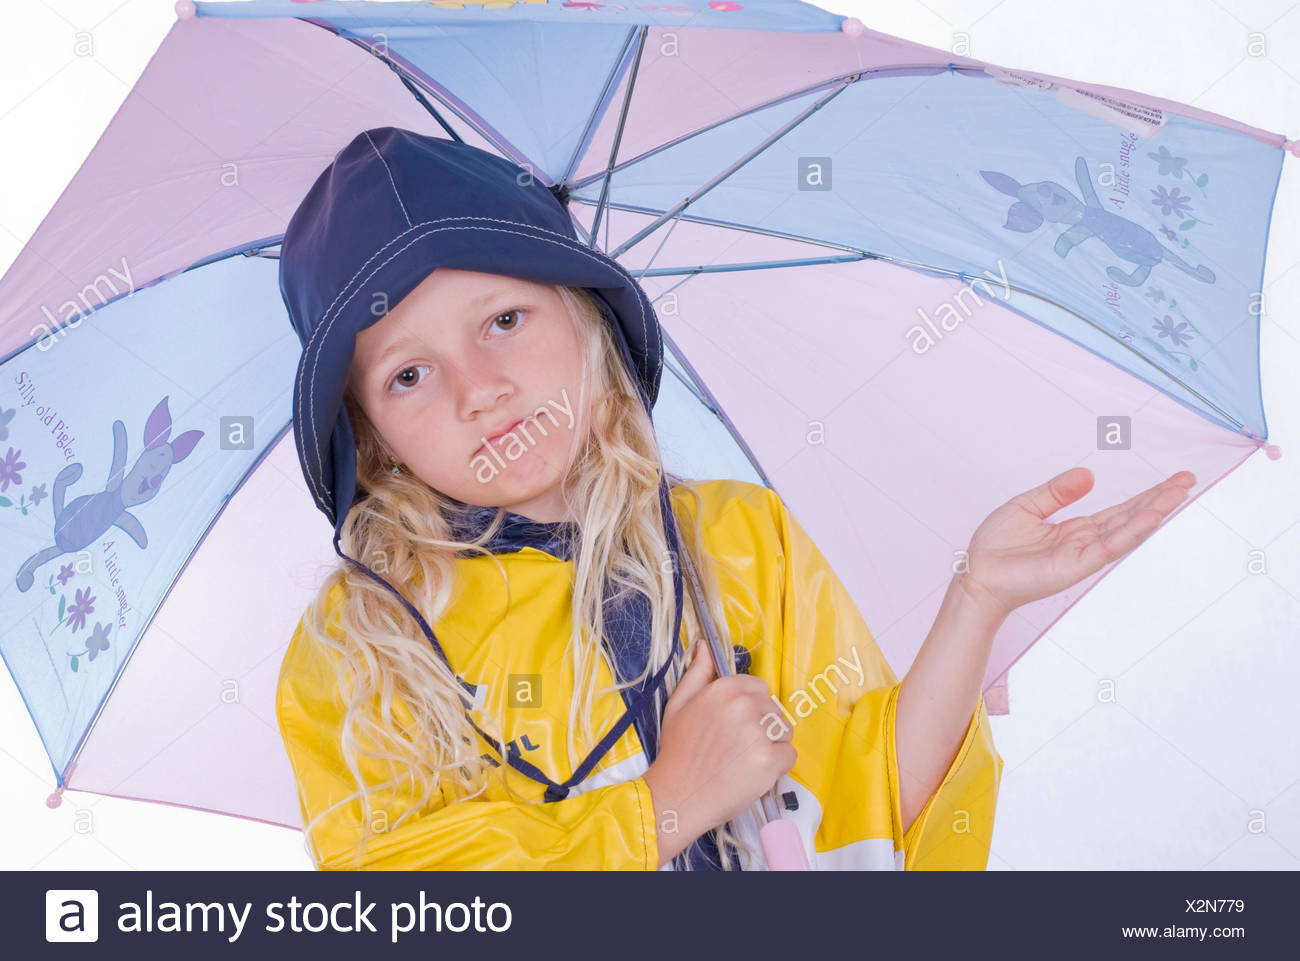 Bad Weather Sad Child Stock Photos & Bad Weather Sad Child ...